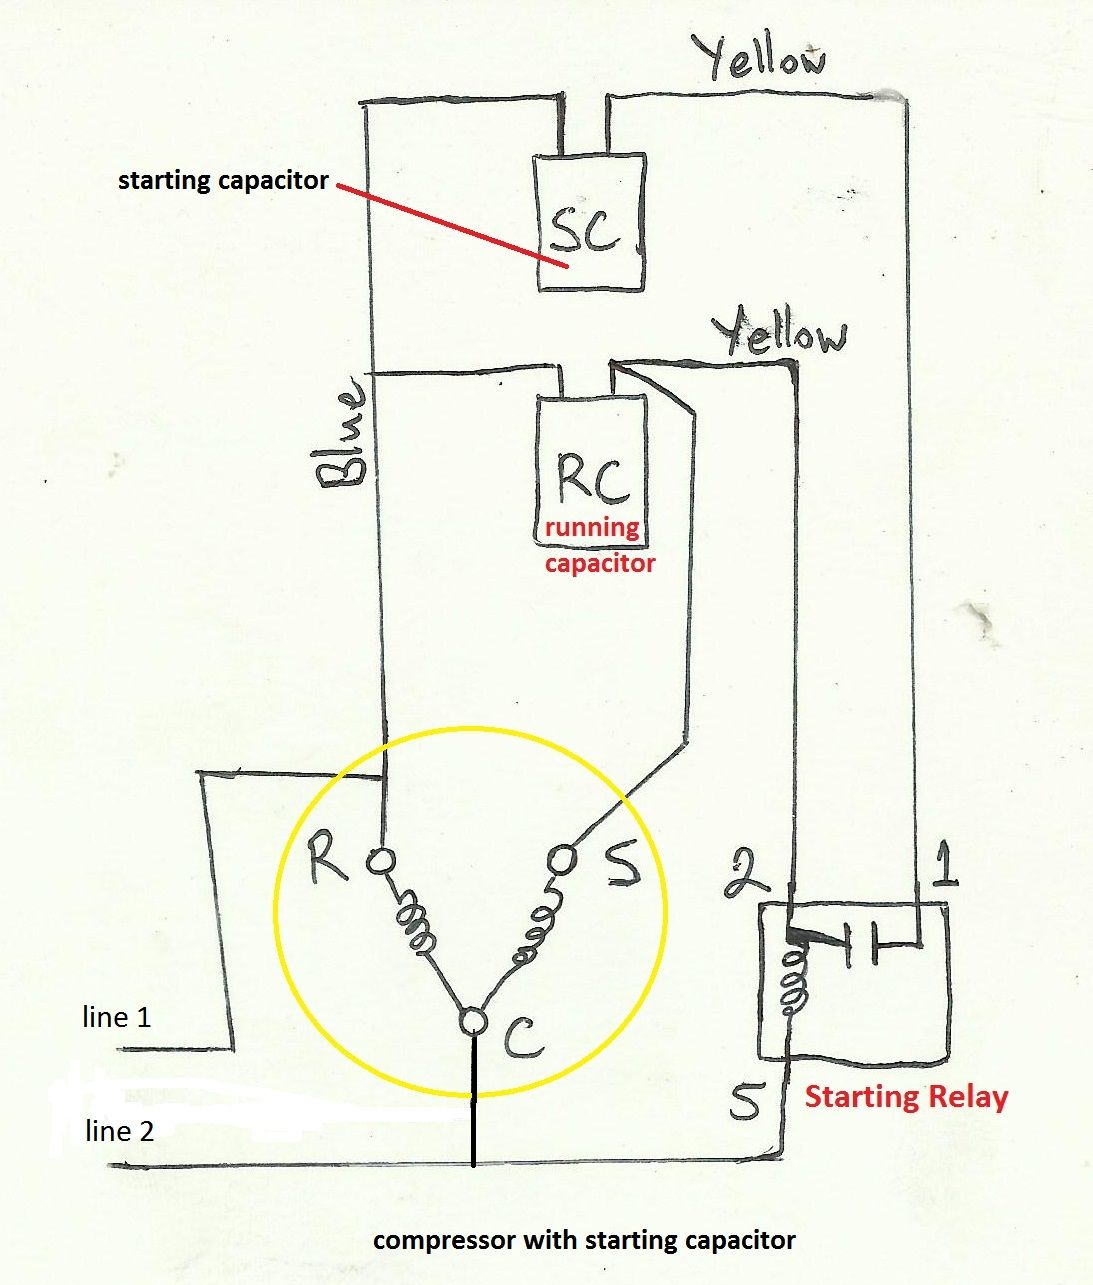 DIAGRAM] Hvac Potential Relay Wiring Diagram FULL Version HD Quality Wiring  Diagram - WIKIDIAGRAMS.SIGGY2000.DE